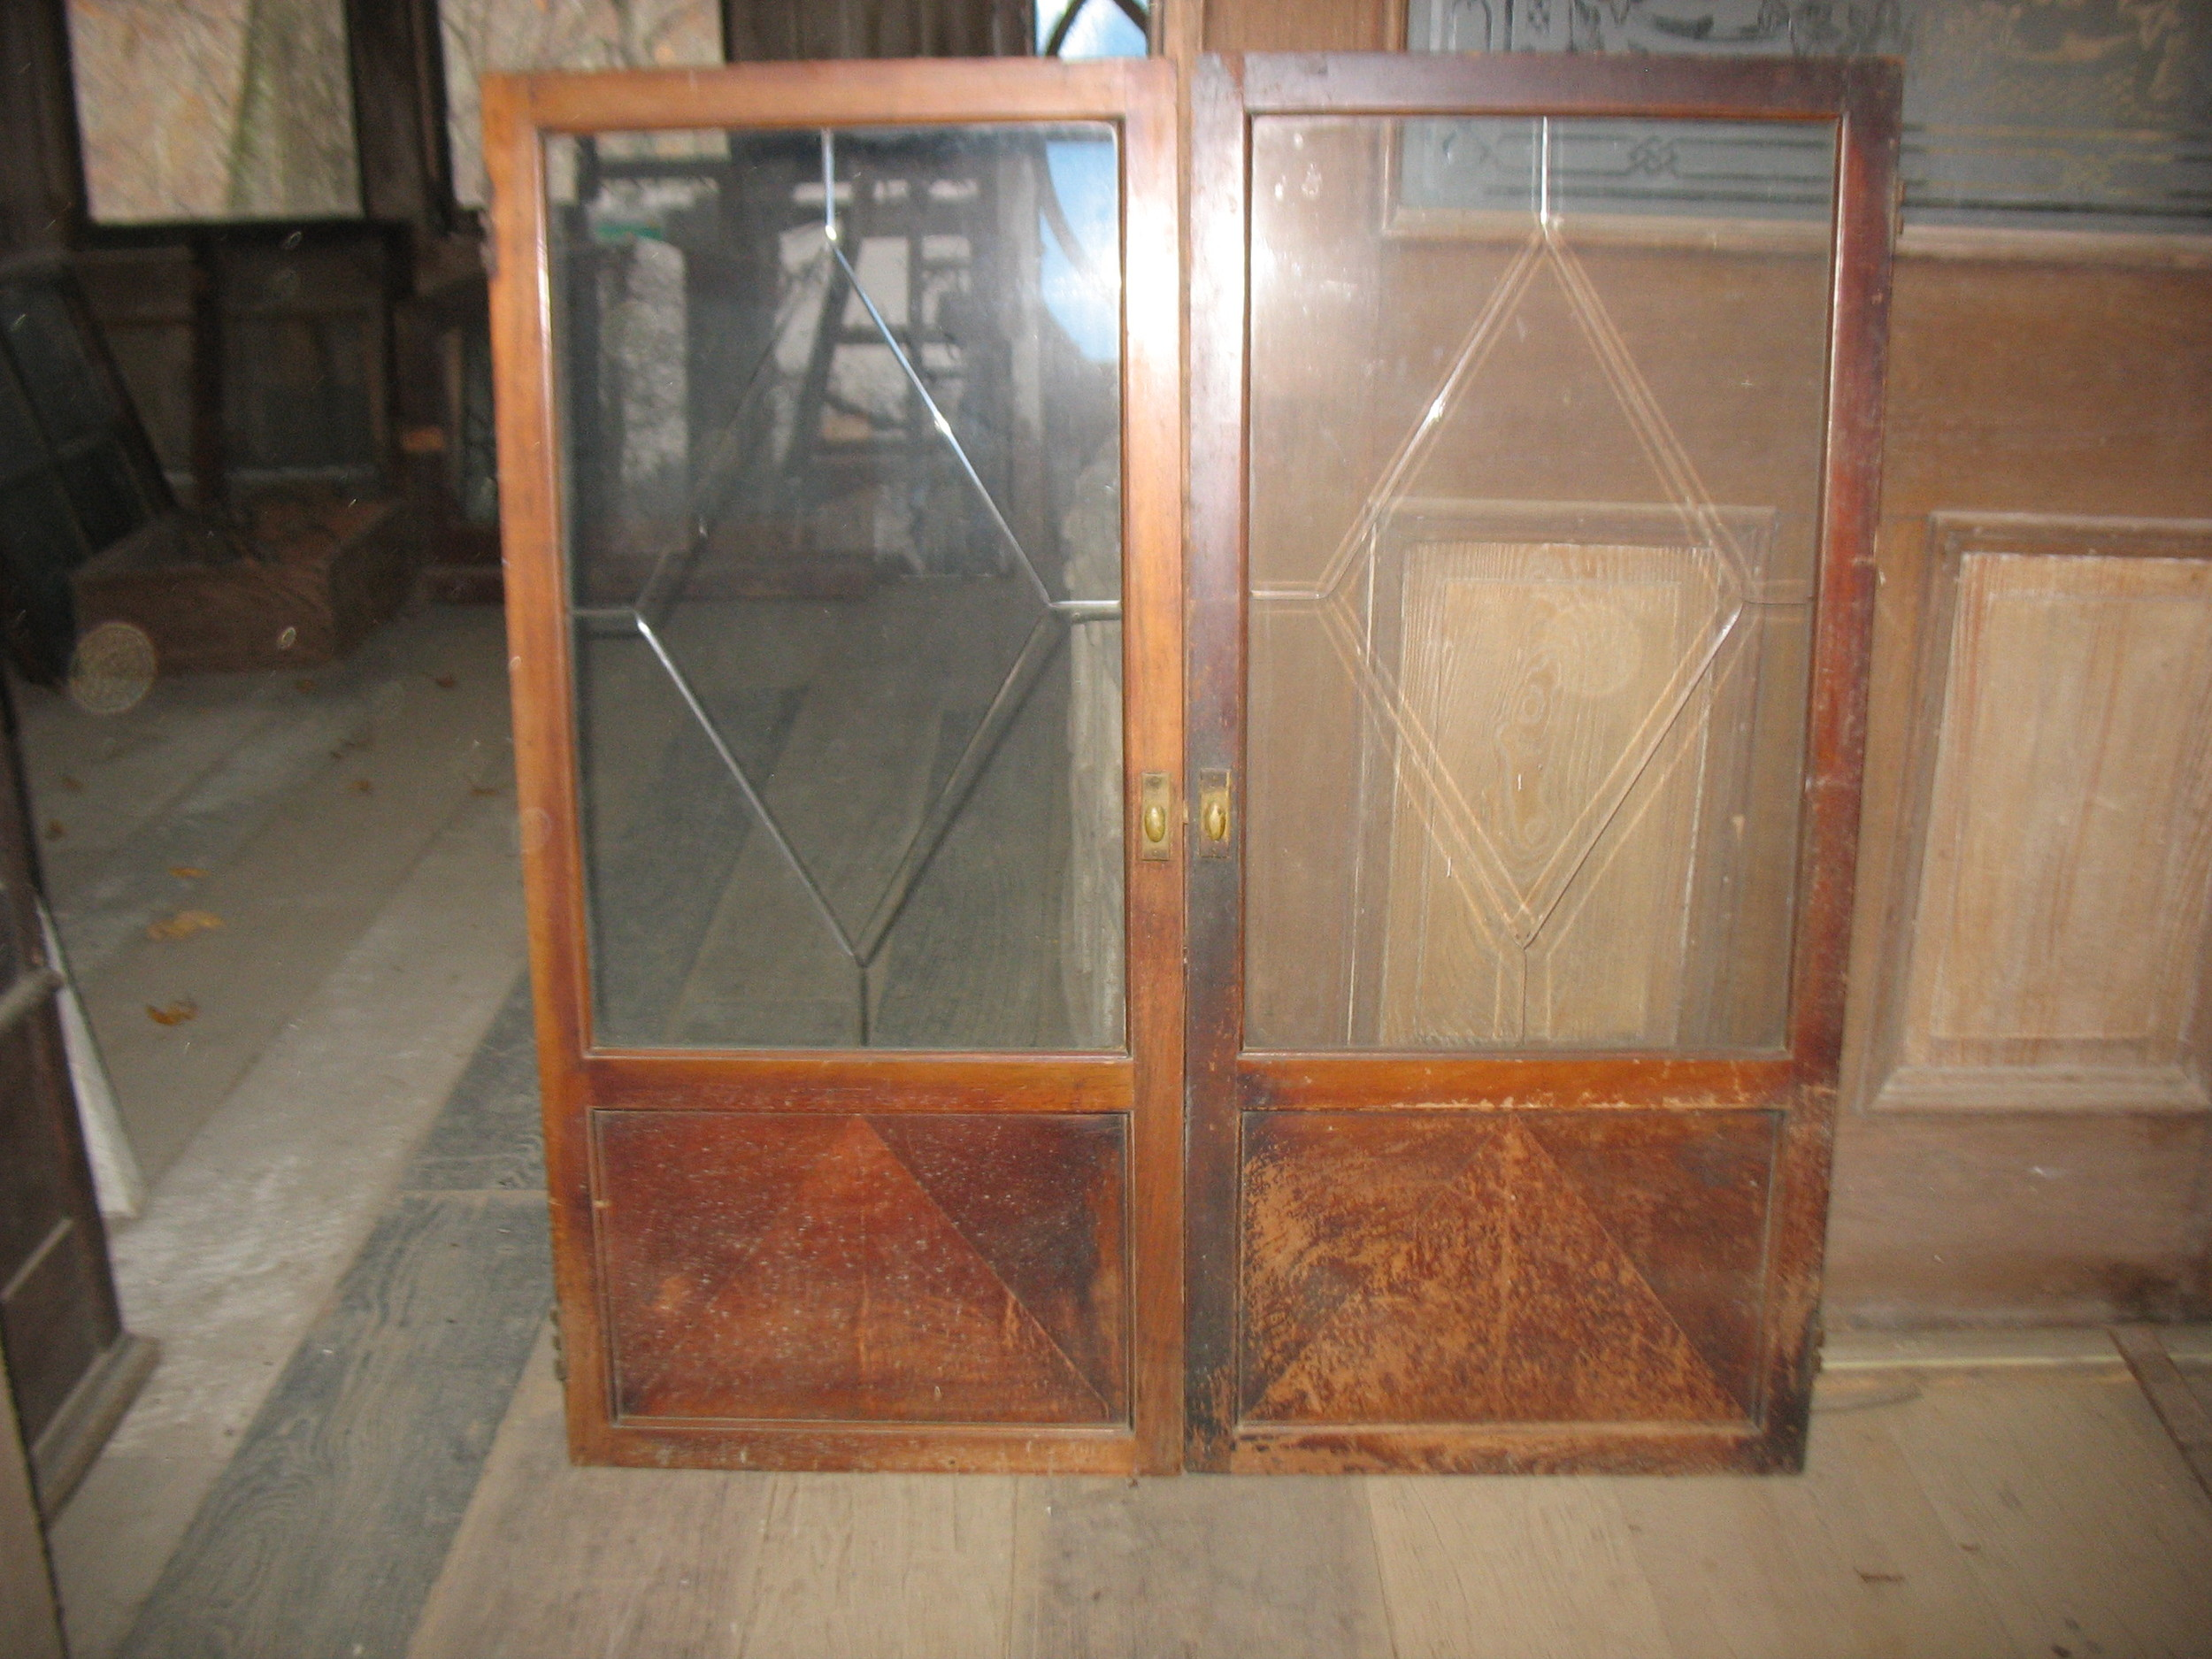 This is a very unusual pair of cabinet doors from a wonderful library in a house in New Orleans. Would make any cabinet beautiful. The heavy glass is hand cut in a diamond design and framed in walnut with original hardware. They measure 49 inches tall X 44 inches overall width. Each window being 22 1/2 inches wide.